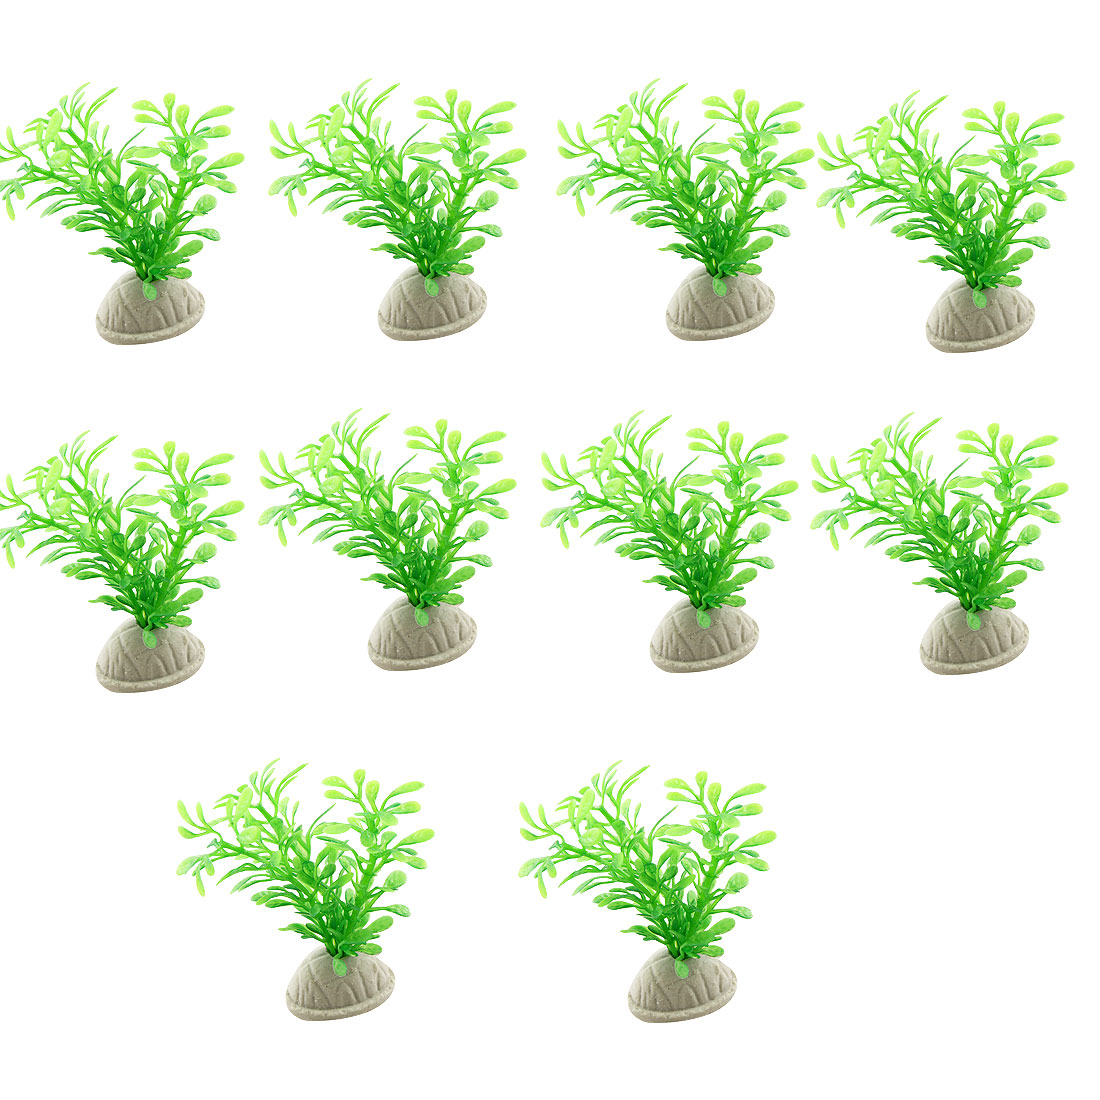 10 Pcs Green Plastic Grass Plant Ornament for Fish Tank